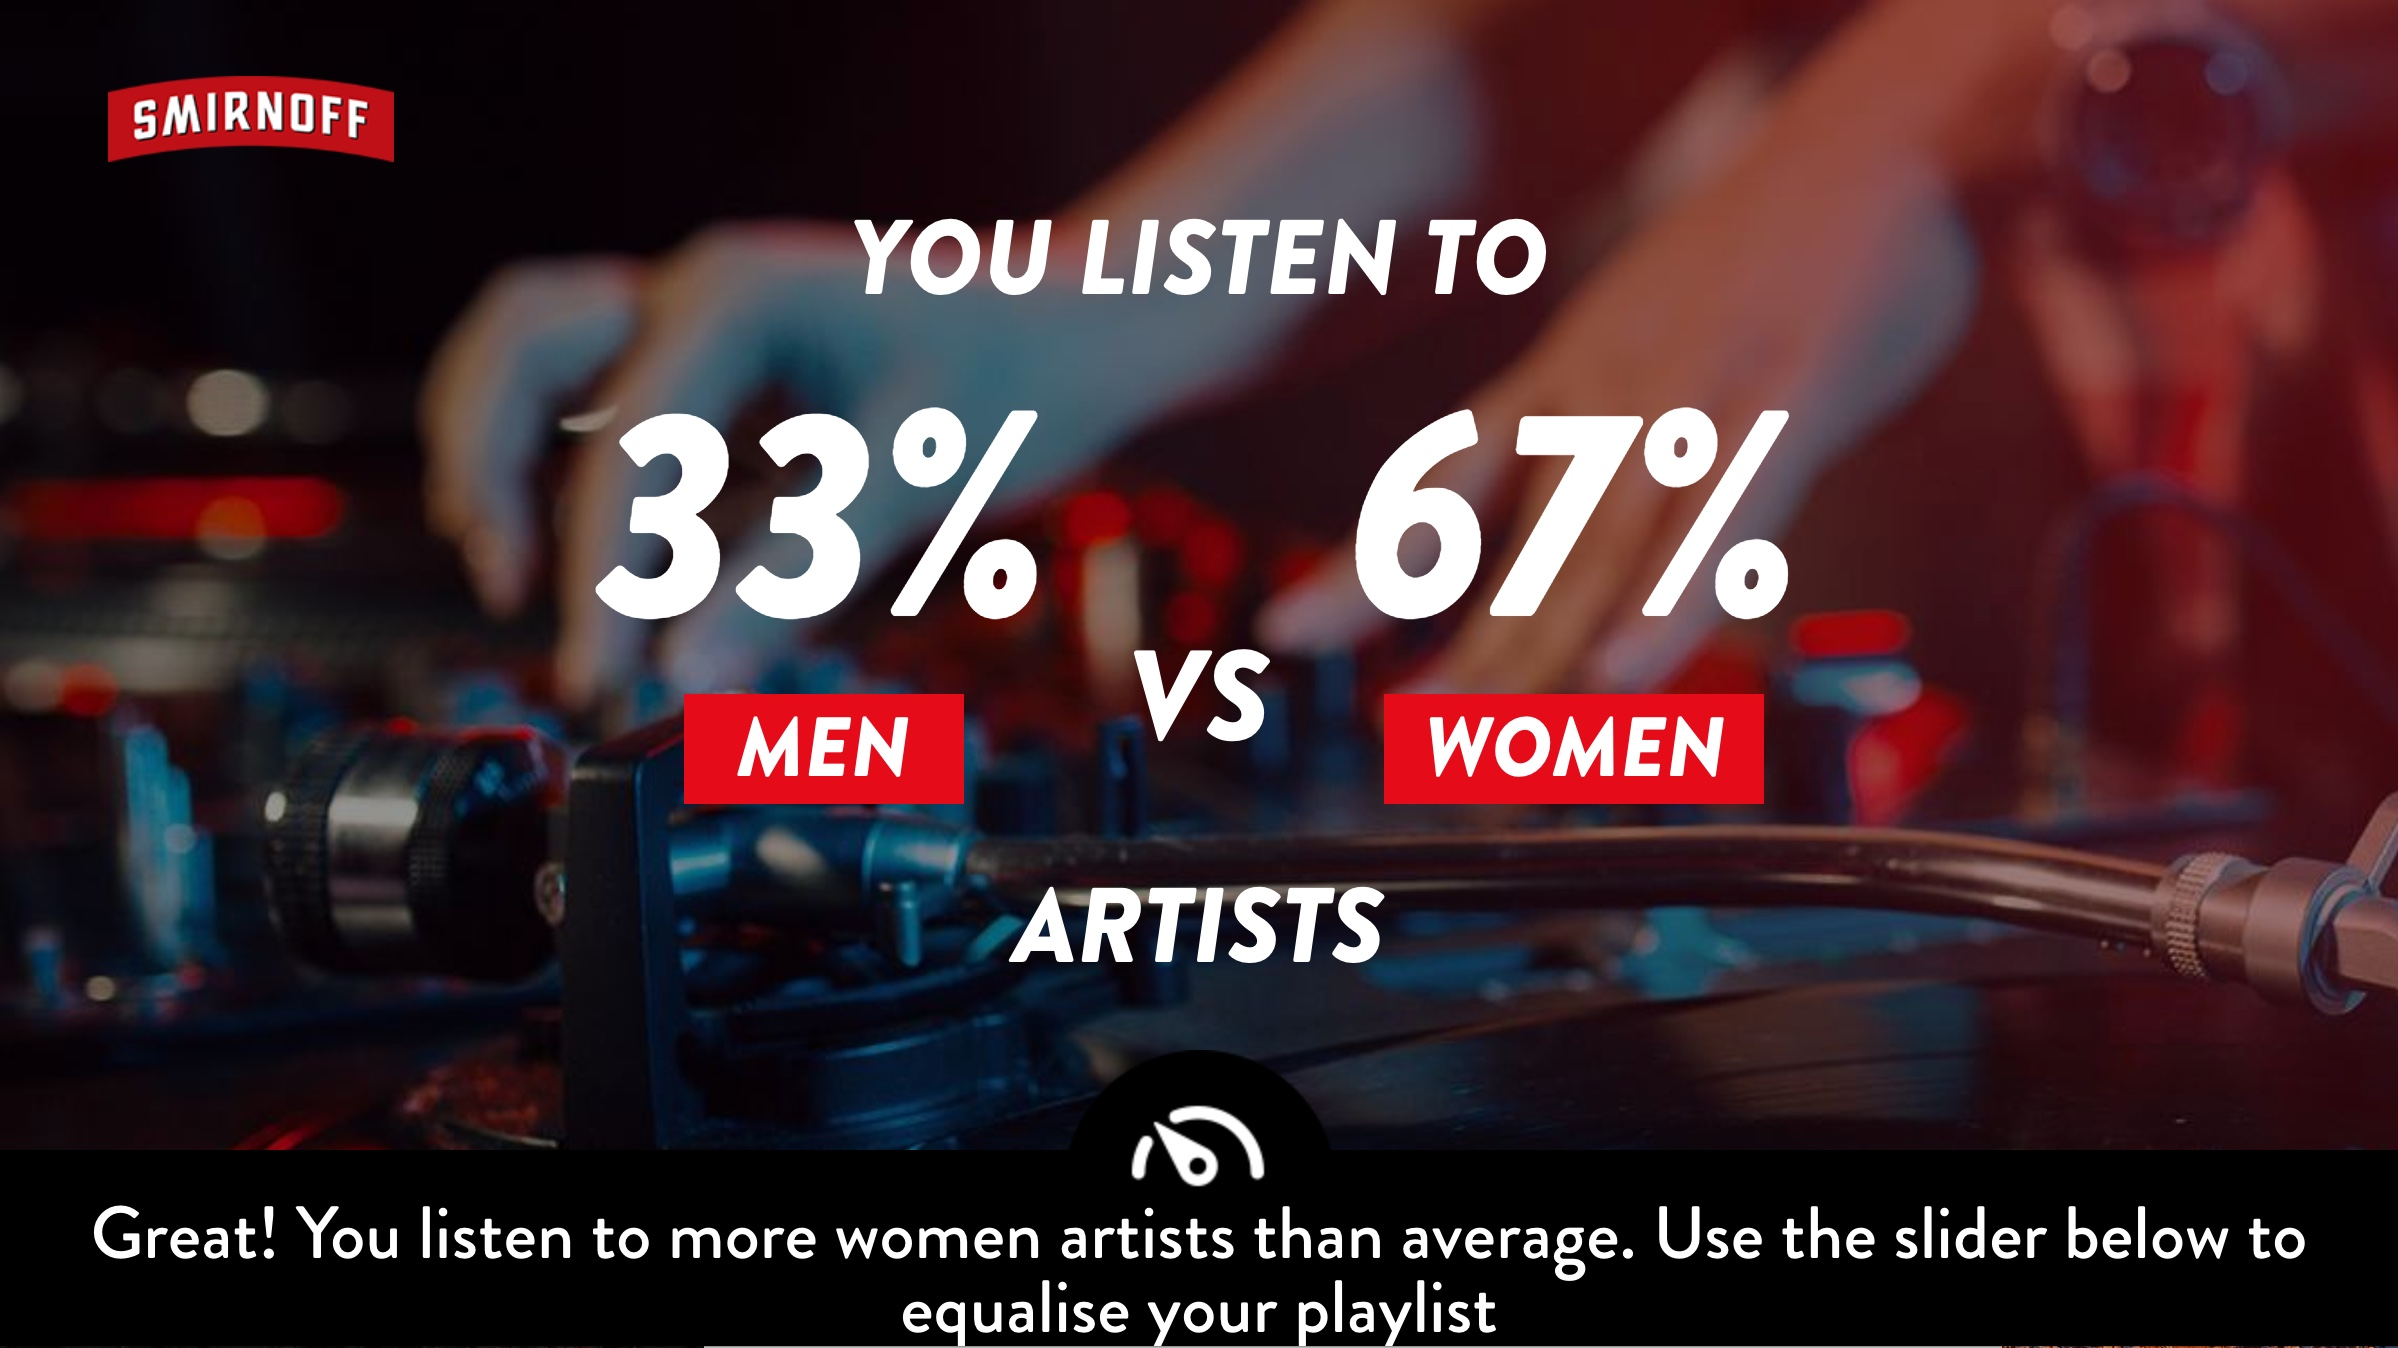 Spotify and Smirnoff launch 'unconscious gender bias' campaign